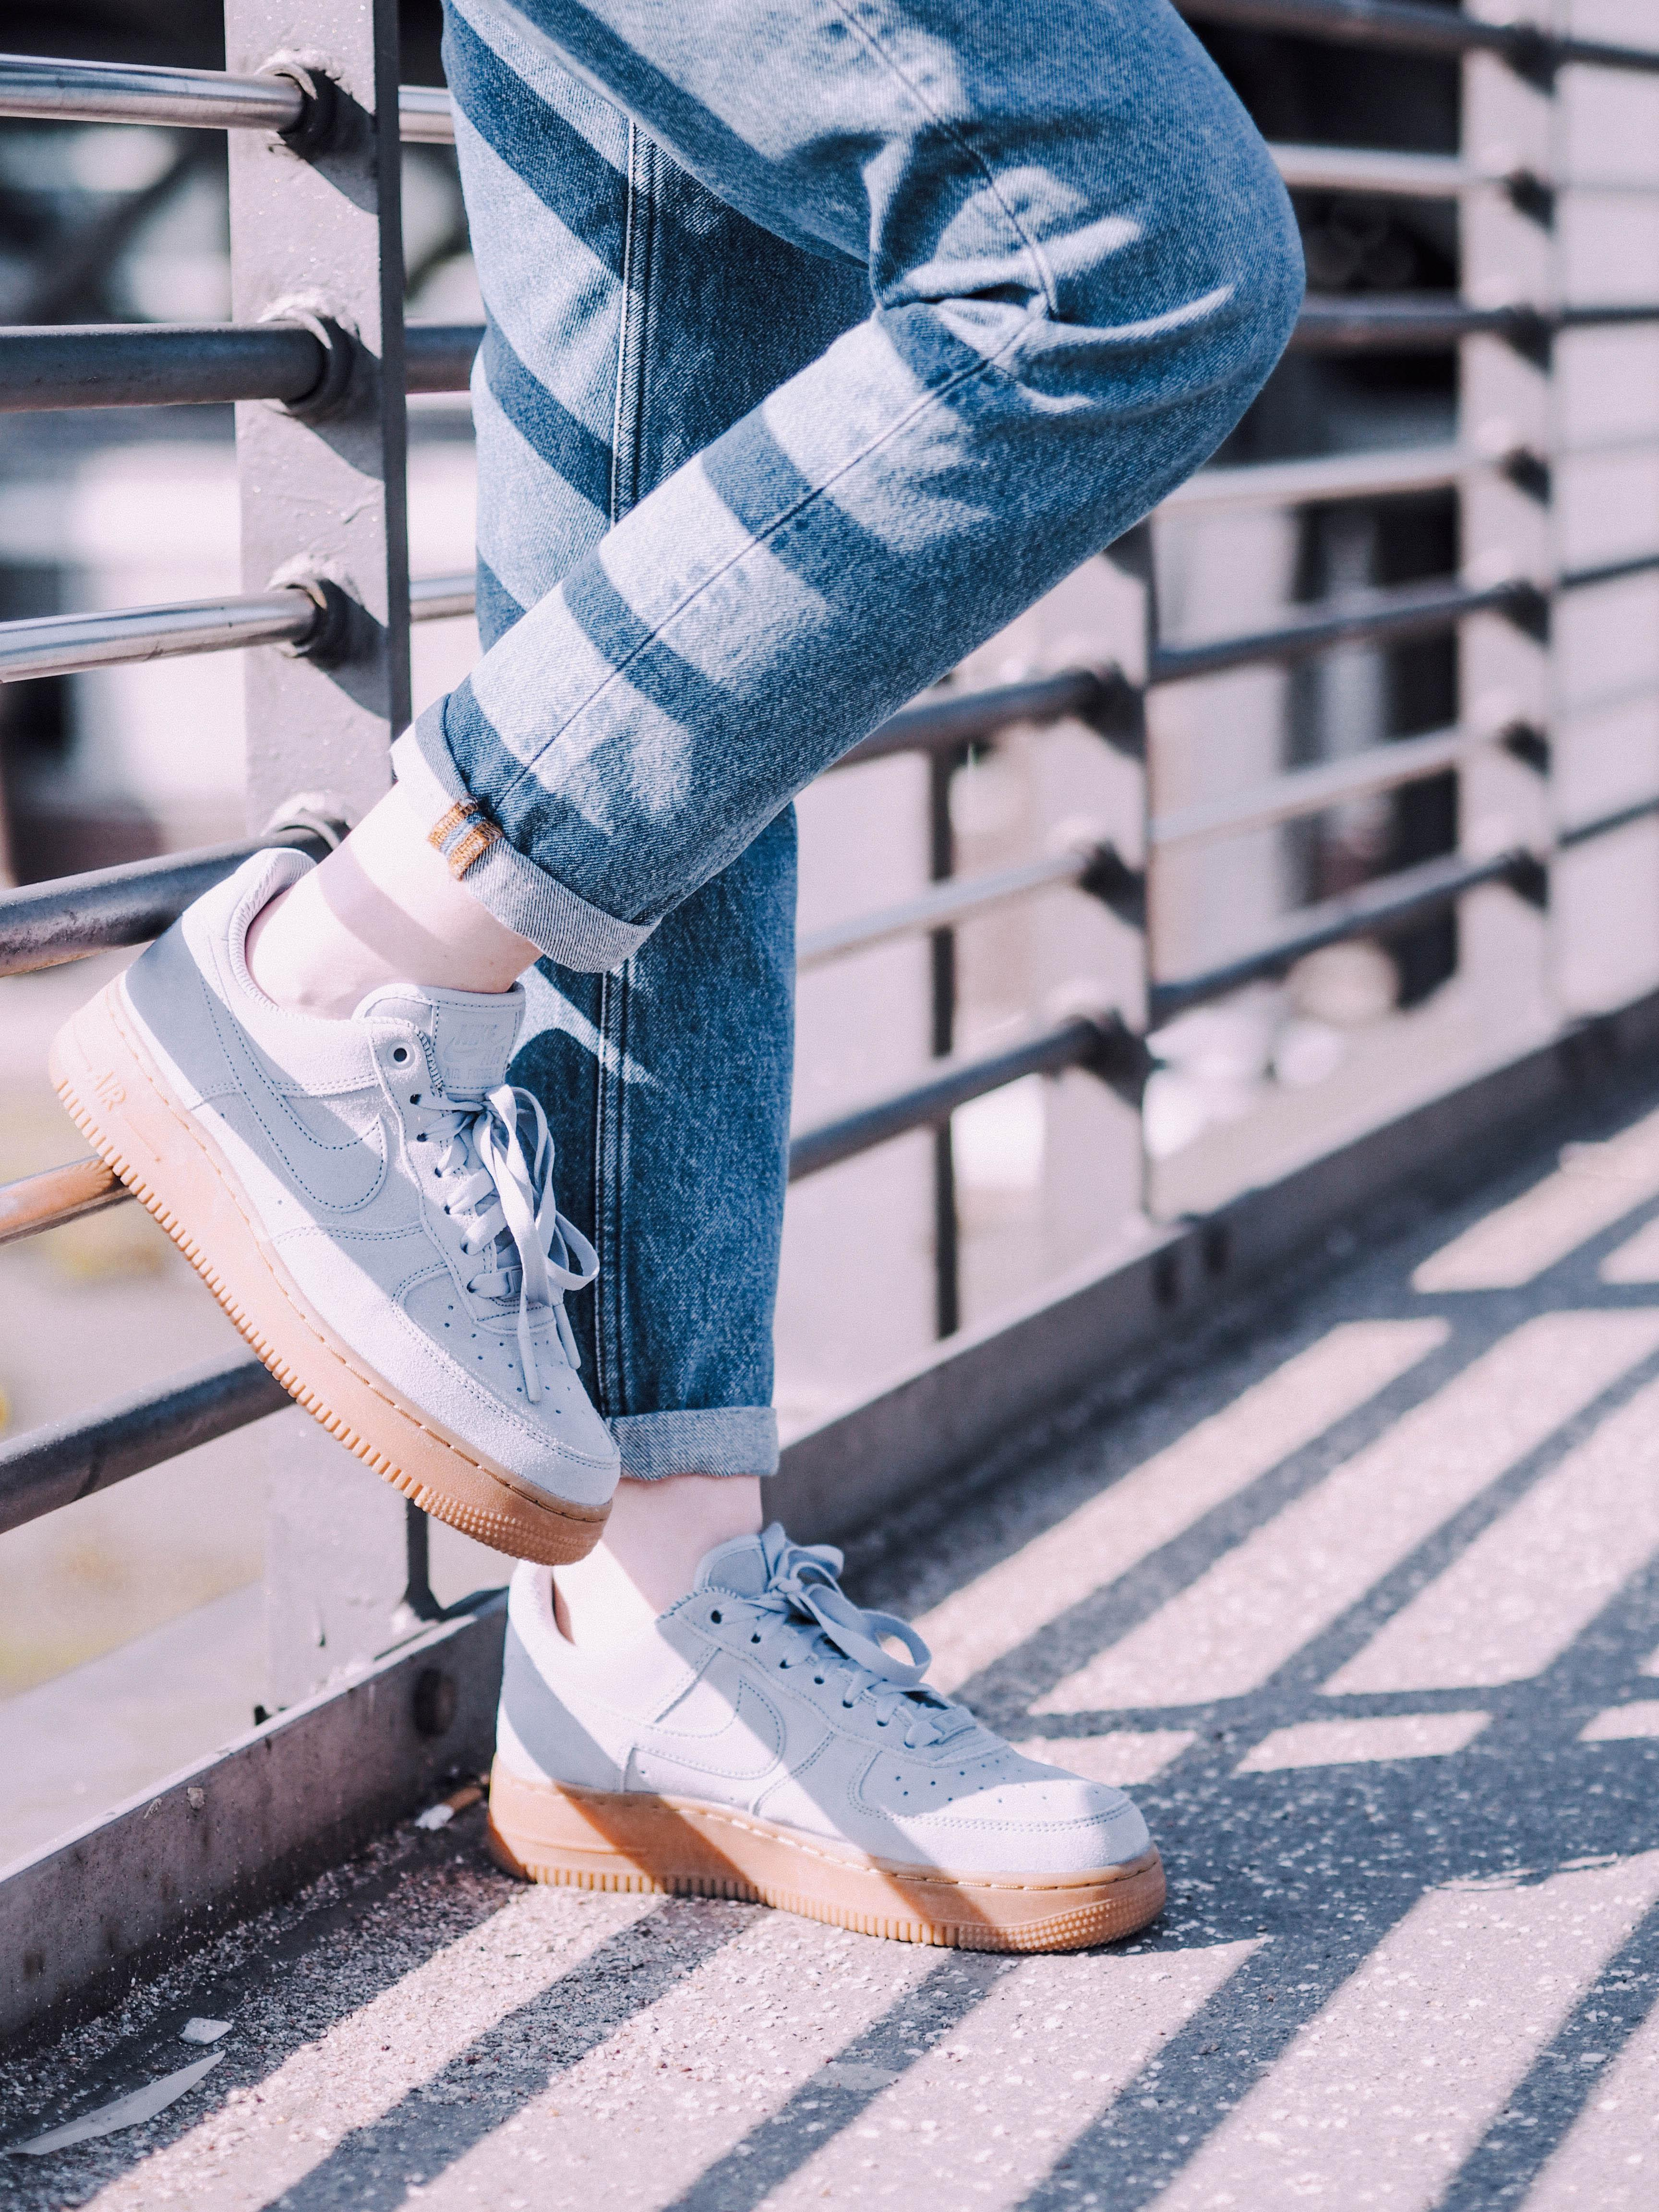 Meine Sneaker-Hotties: Die Nike Air Force 1